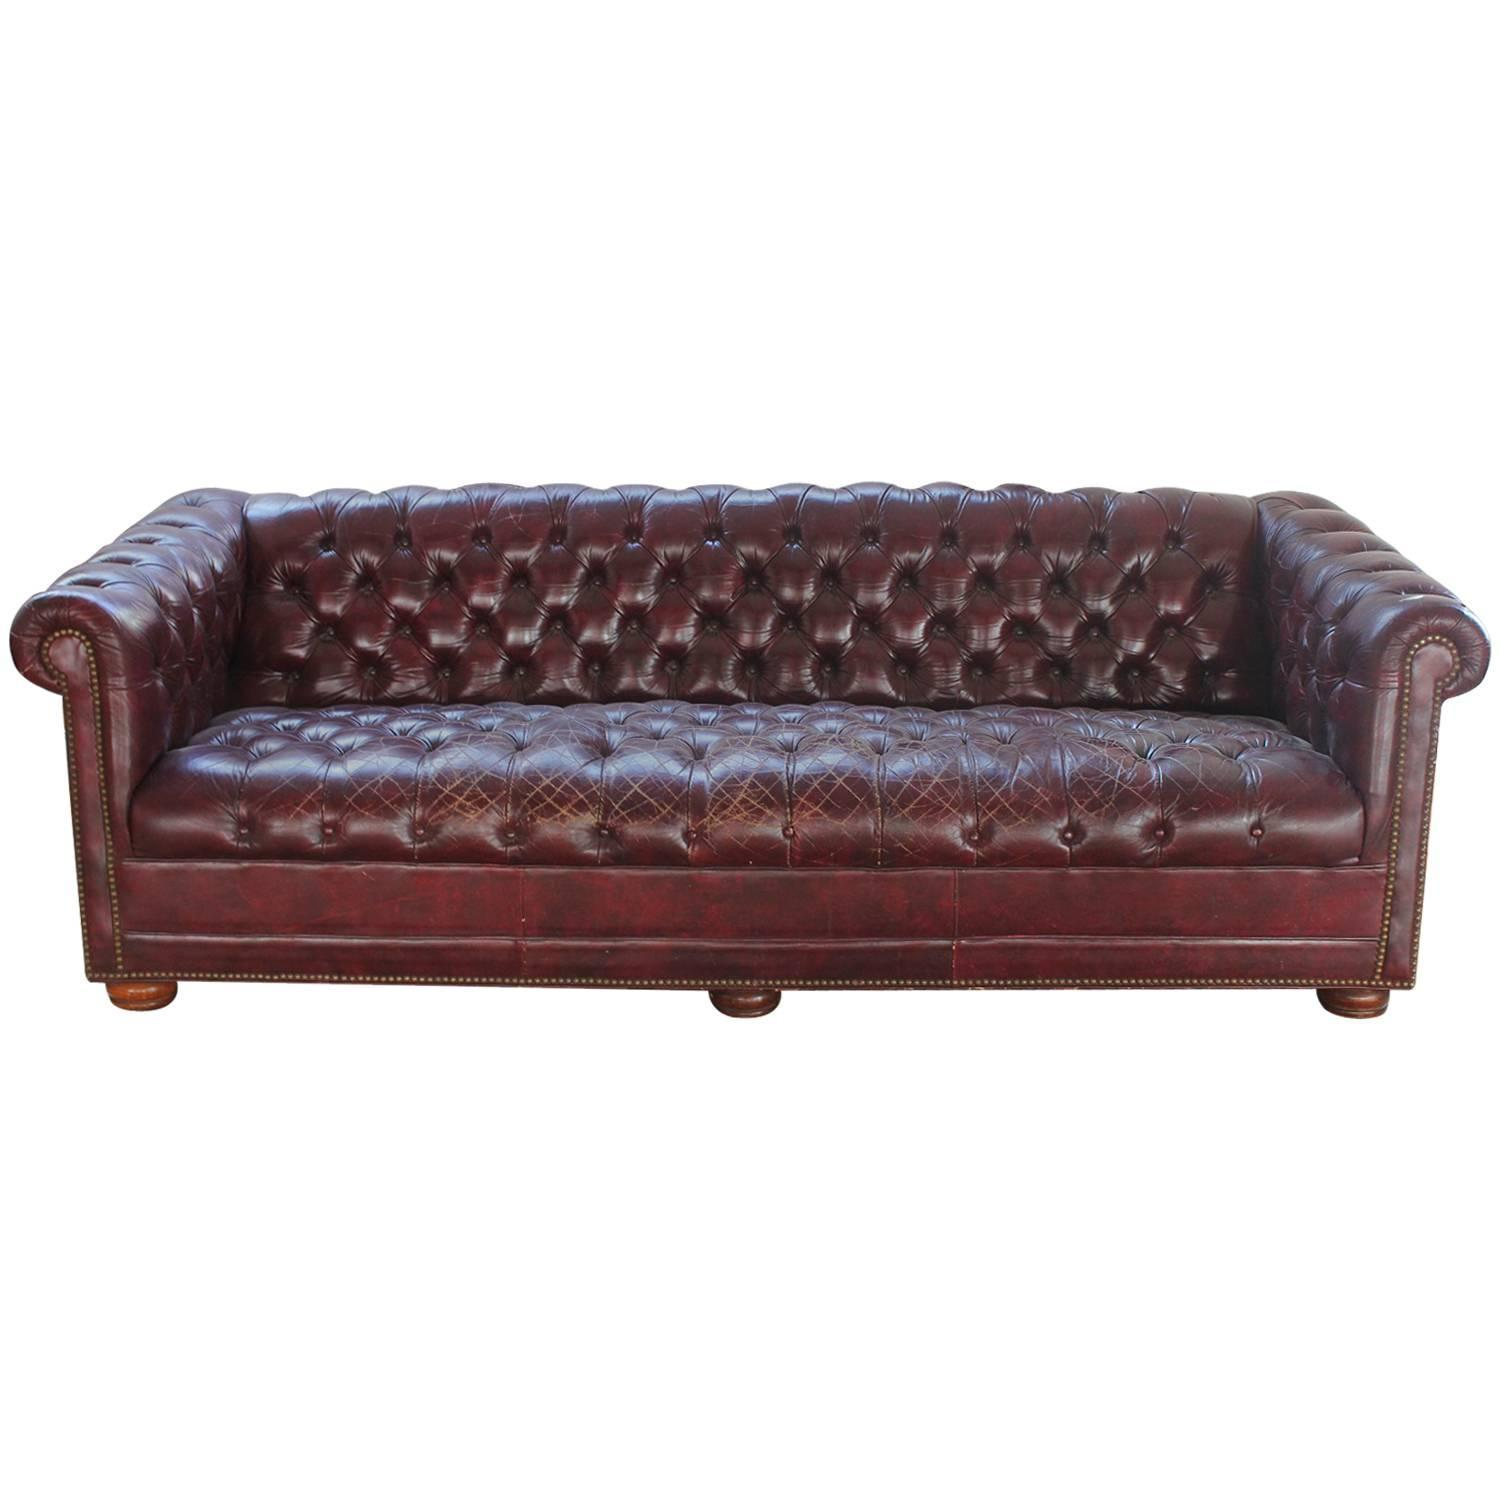 Vintage Distressed Burgundy Leather Chesterfield Sofa For Sale At 1stdibs